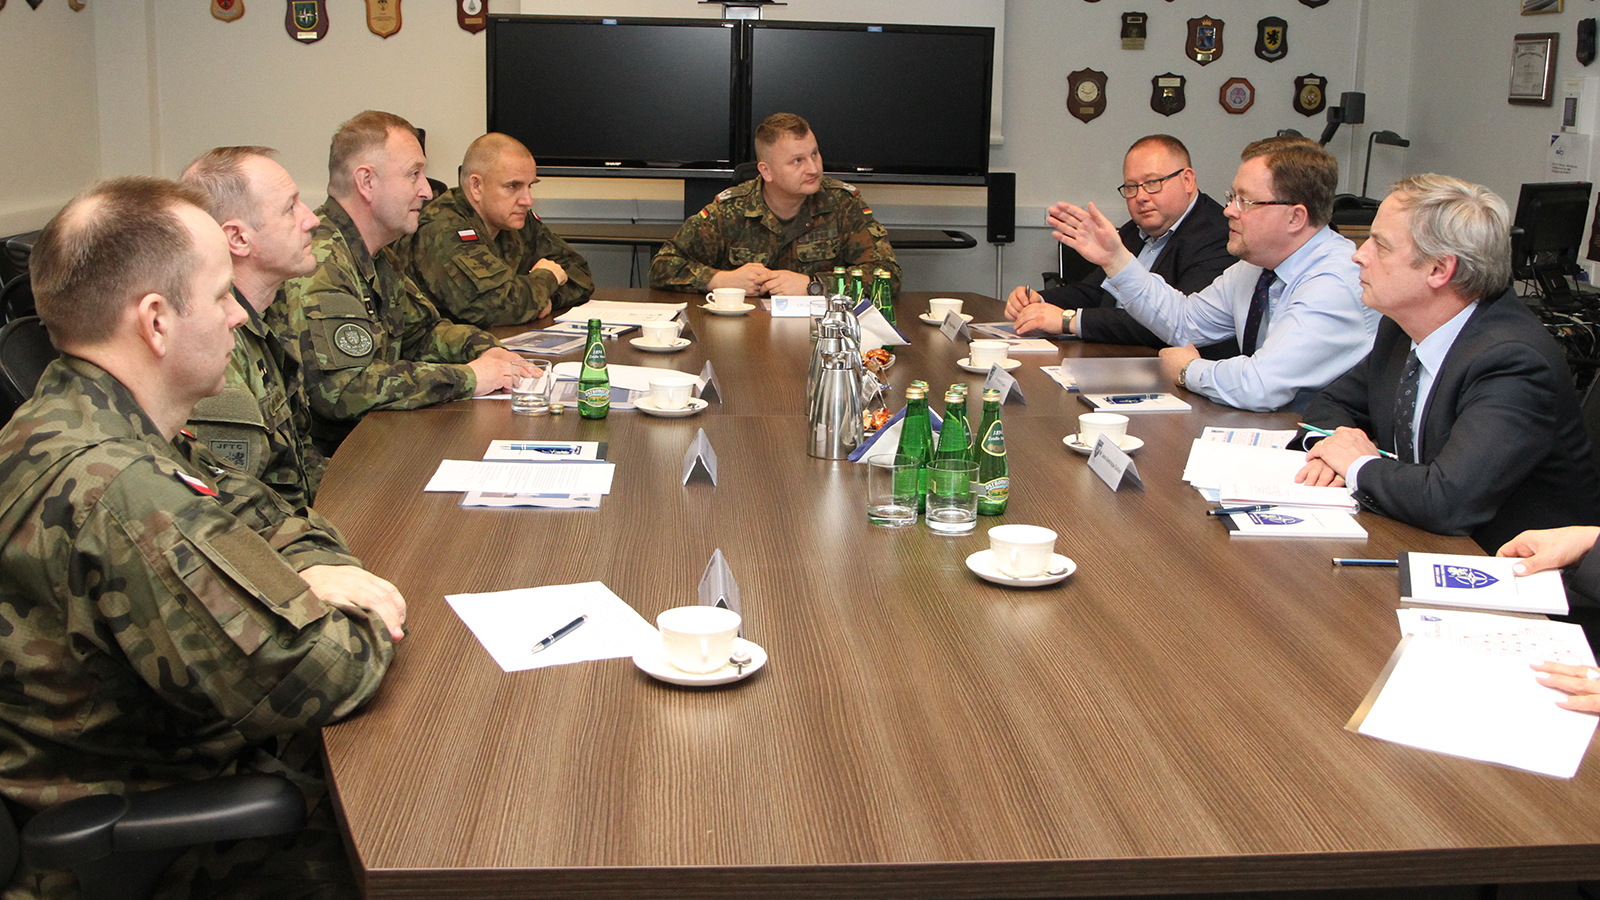 NATO's Assistant Secretary General for Operations visits Joint Force Training Centre